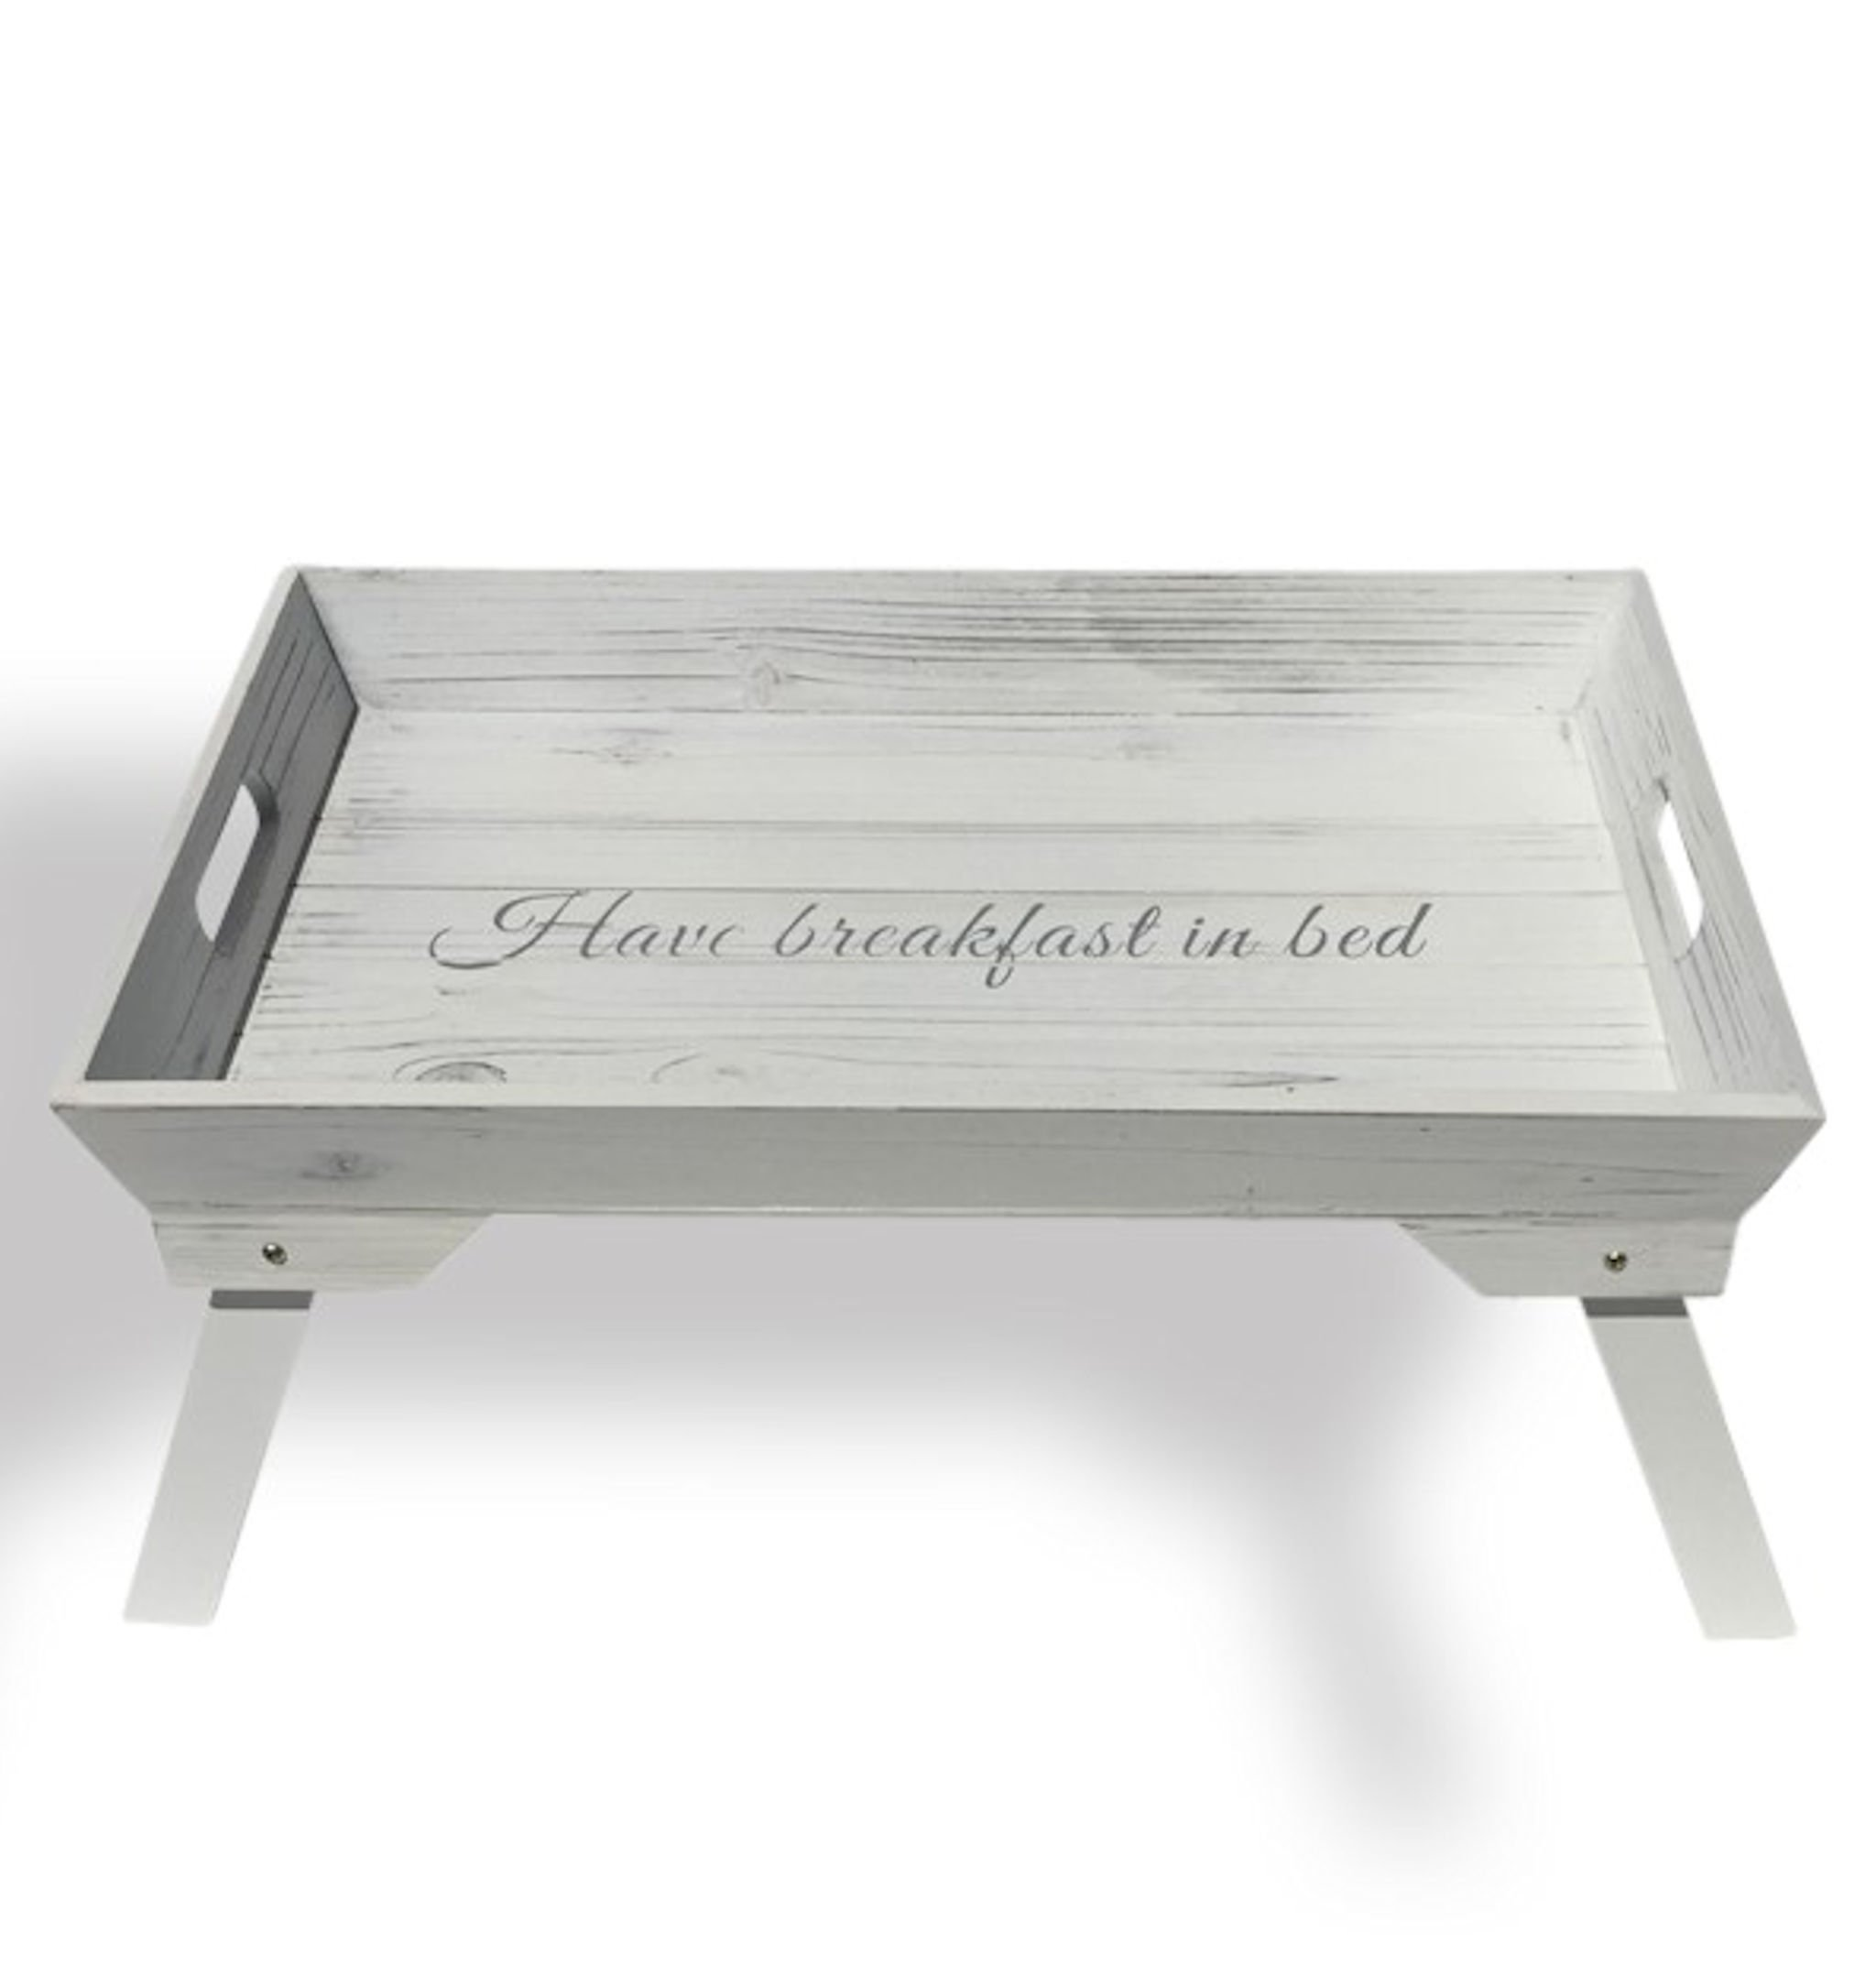 Whole House Worlds The Hamptons Have Breakfast in Bed Tray, White Wood, Folding Legs, 19 x 12 ½ x 9 ½ Inches, By